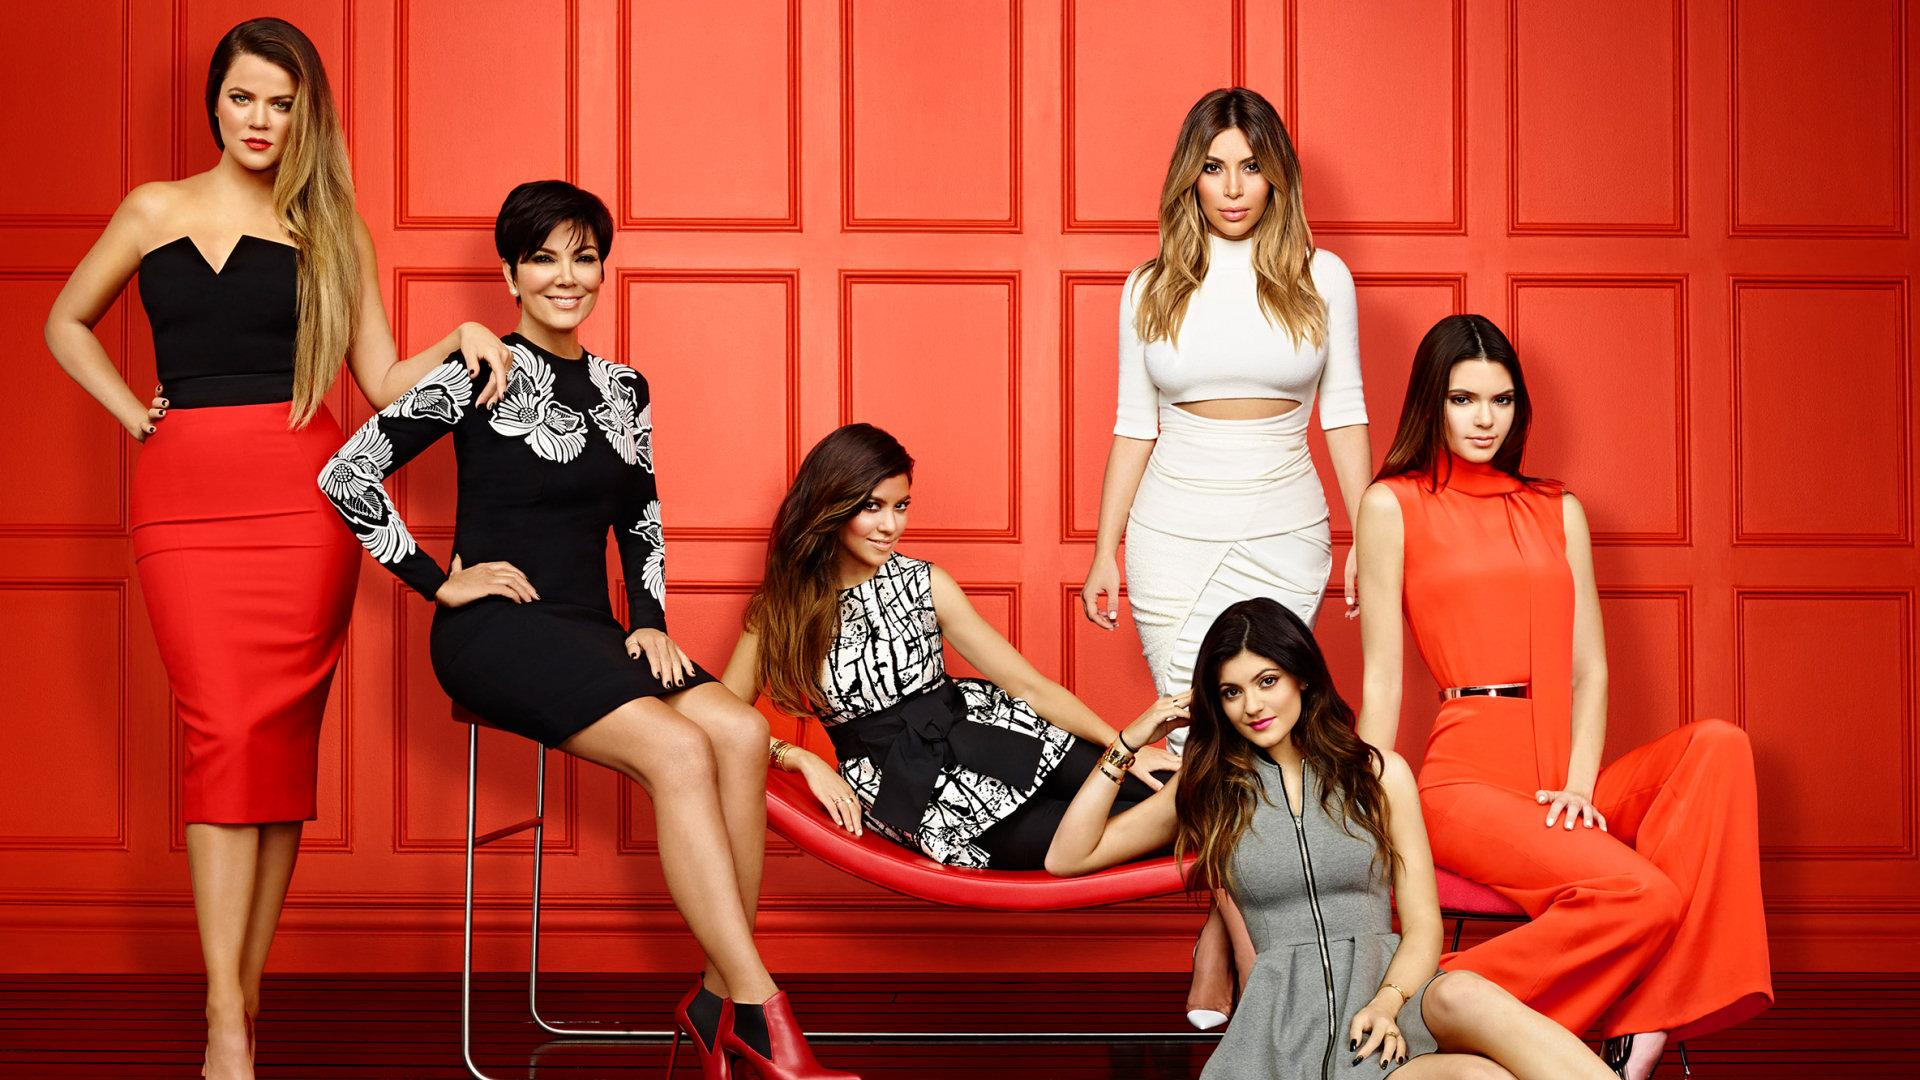 keeping_up_with_the_kardashians_2014_season_9.jpg